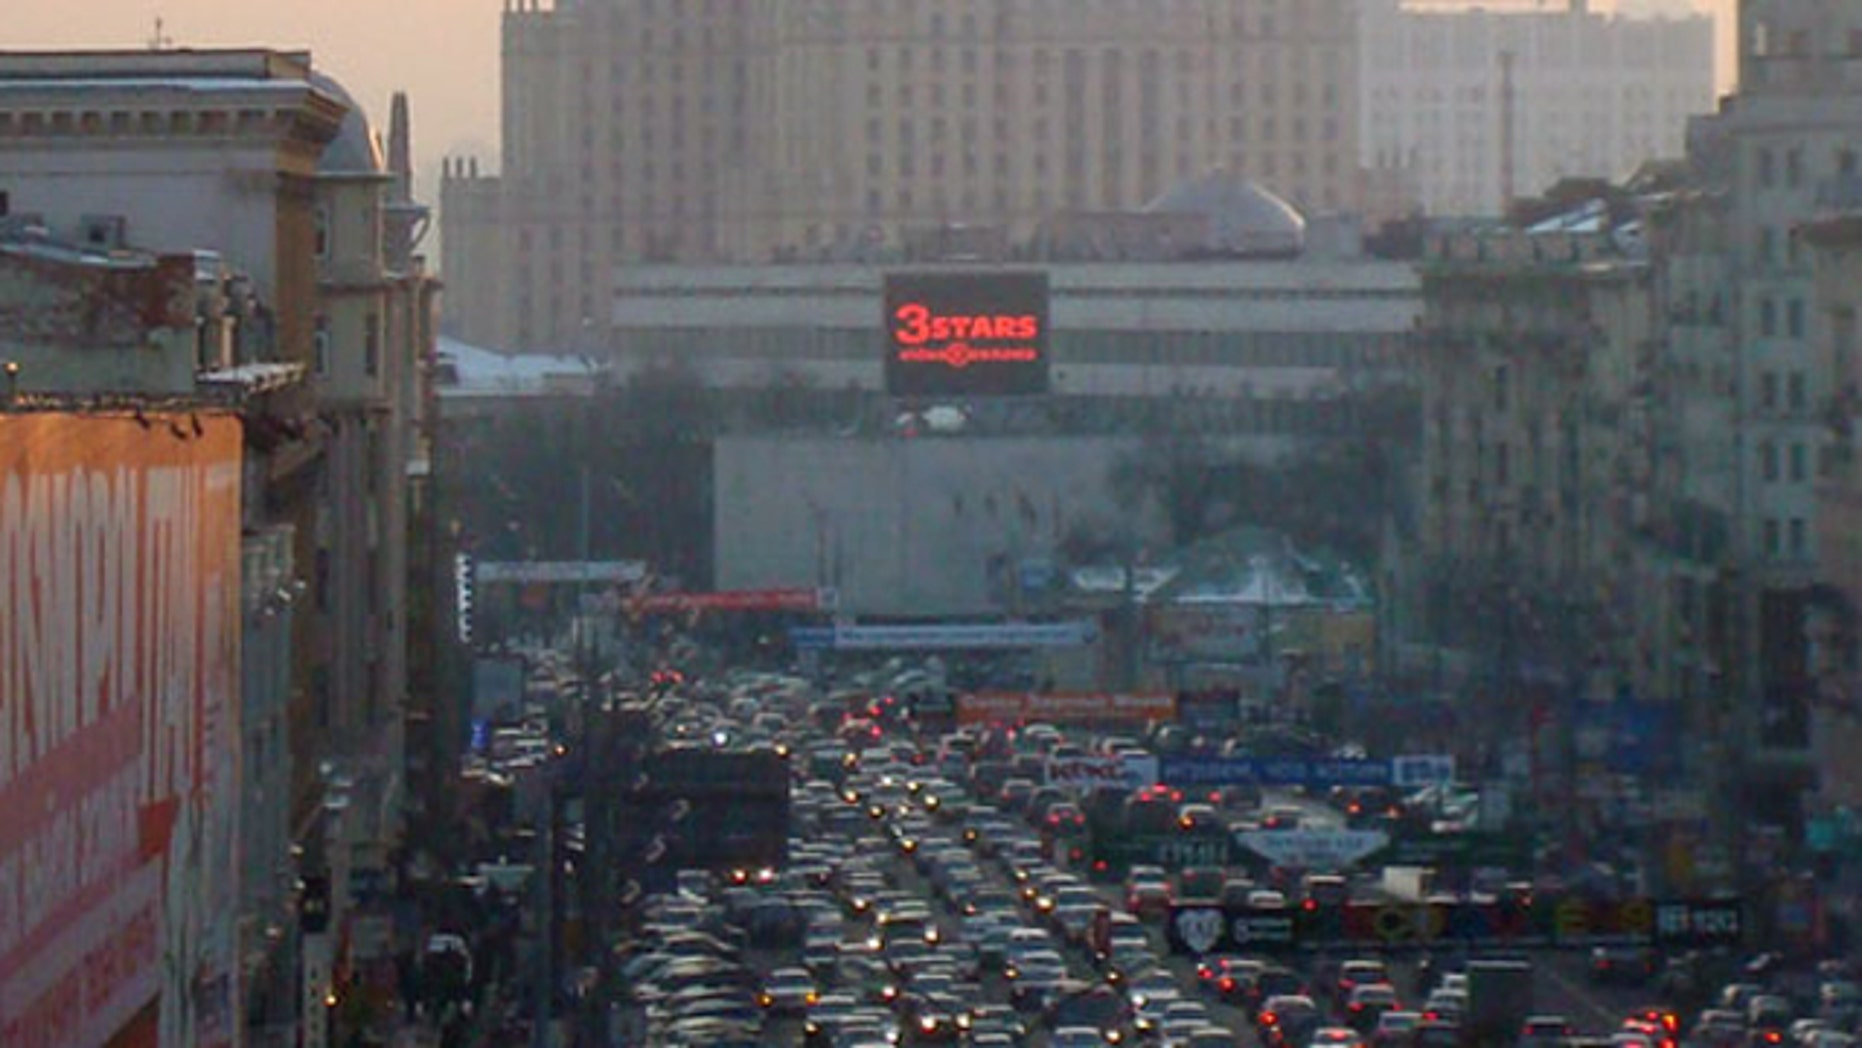 Panno.ru operates a network of billboards such as this one around Moscow. Hackers locked traffic in the city on Friday by posting a porongraphic clip to one billboard.